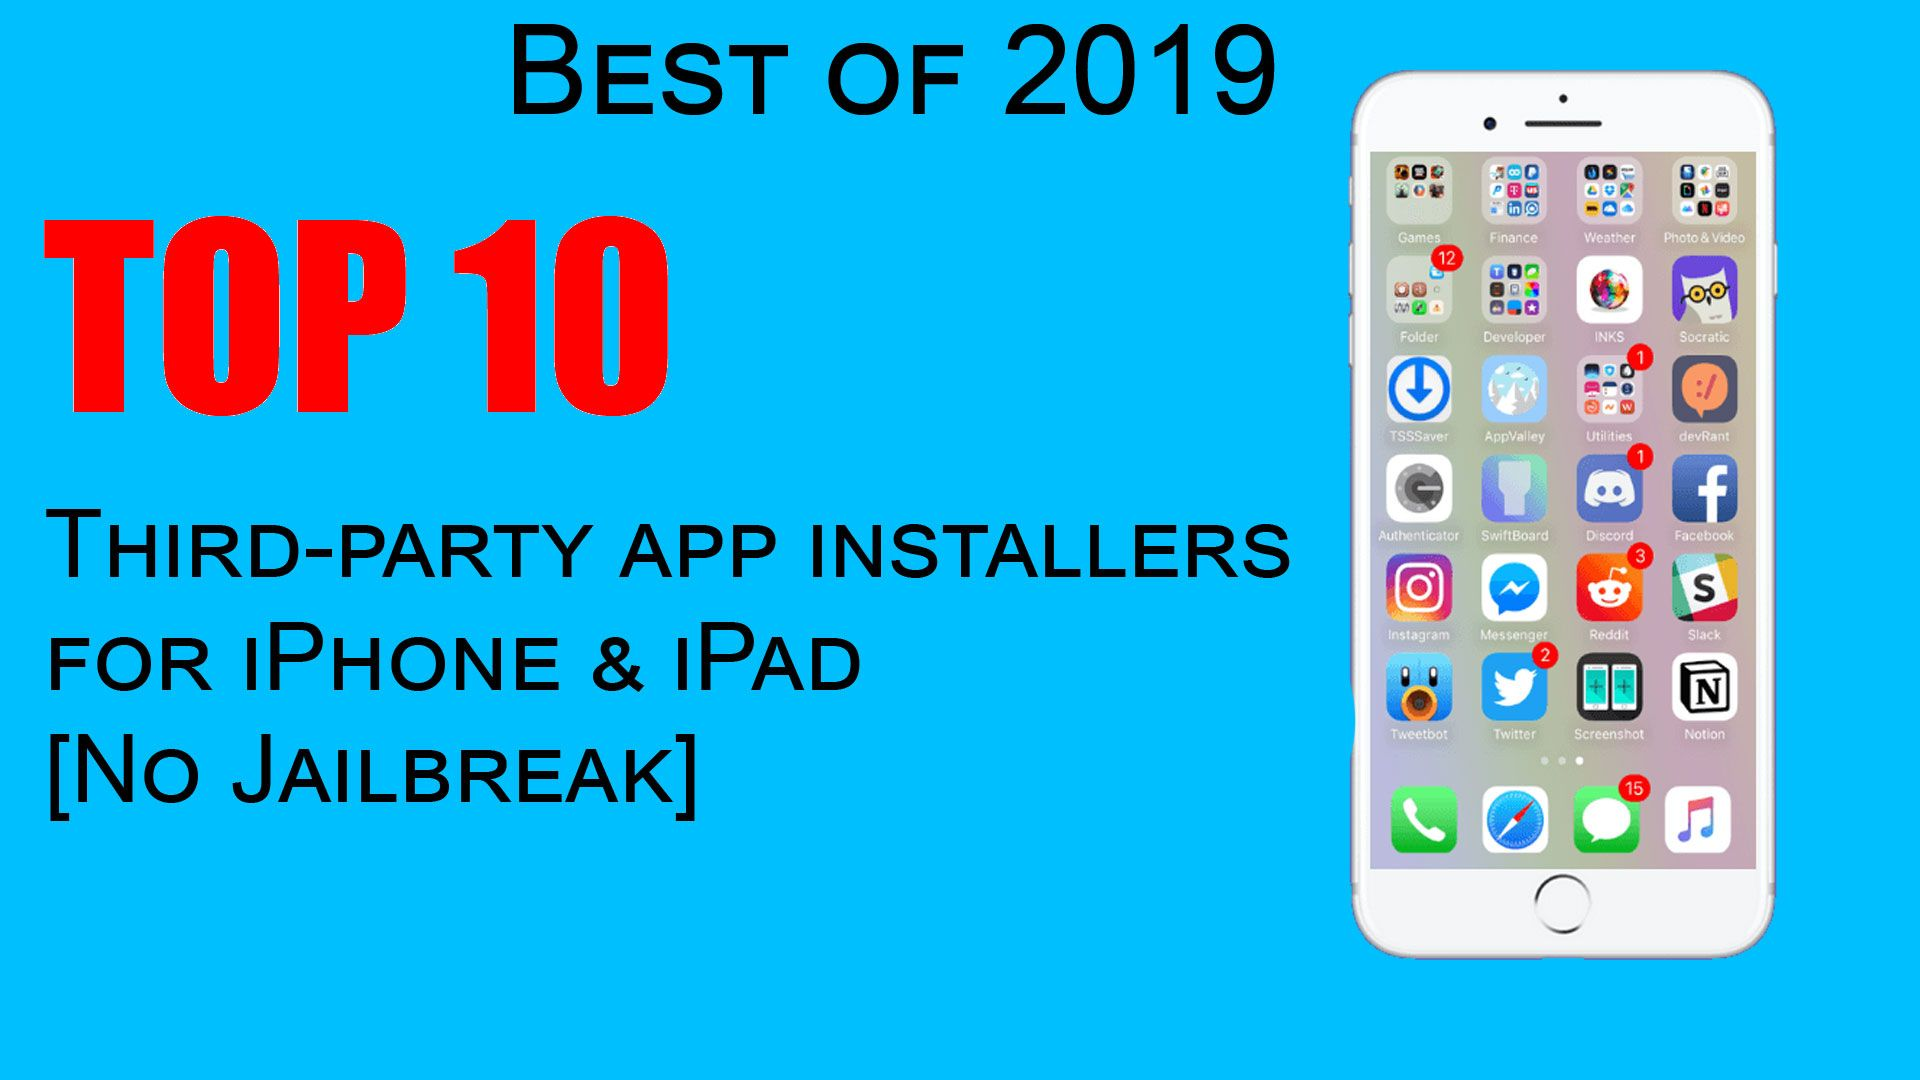 Top 10 Thirdparty app installers for iPhone & iPad